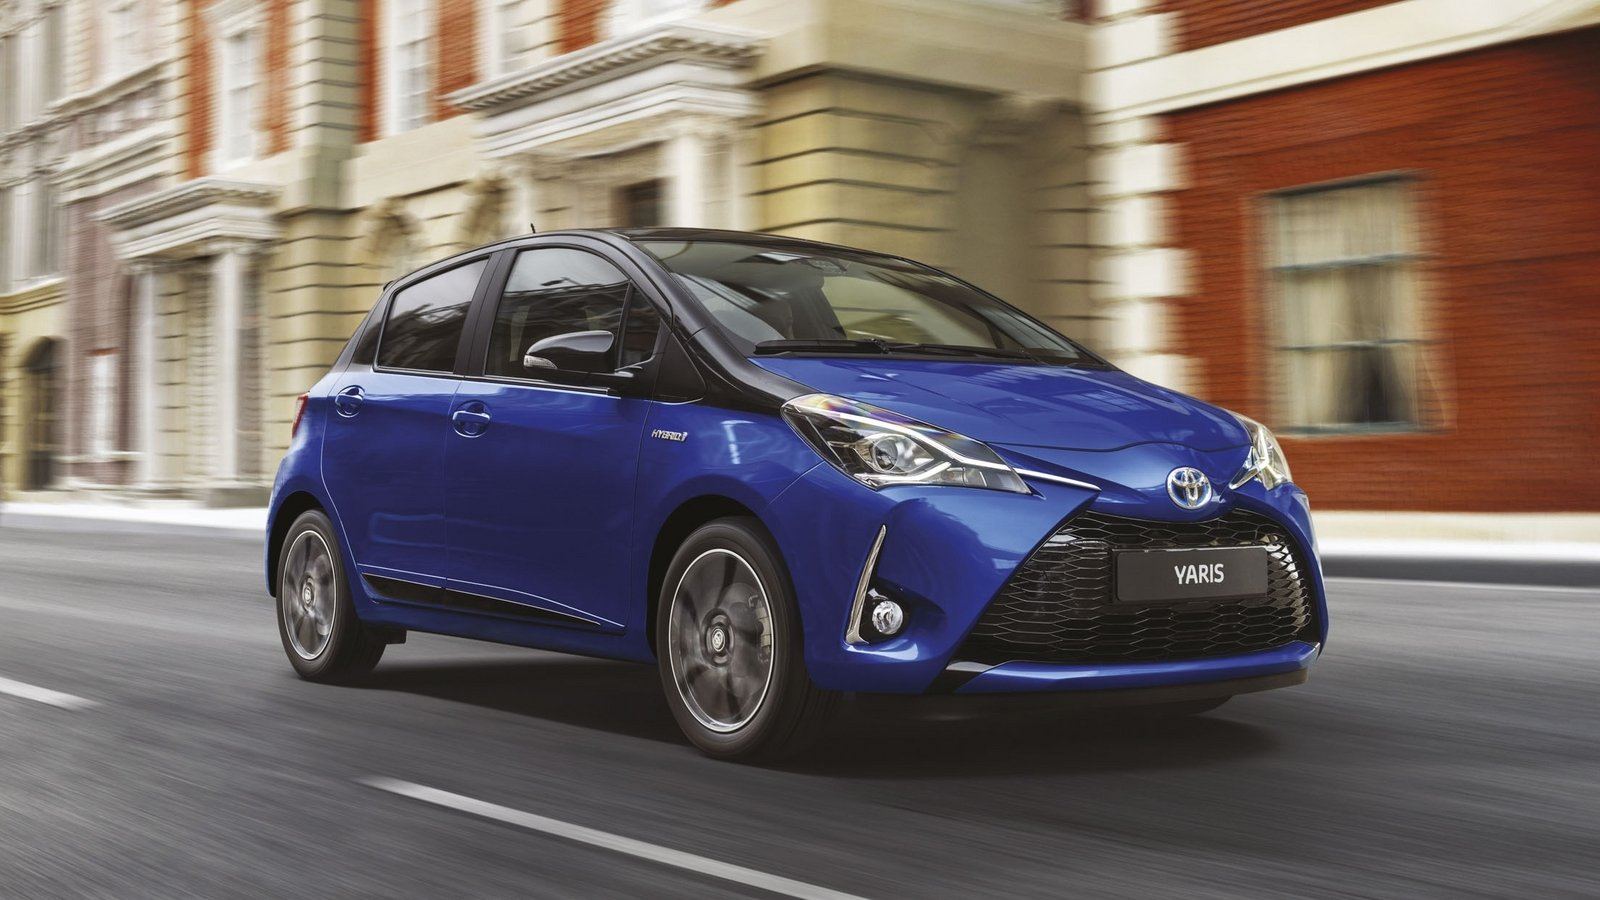 toyota yaris 2017 trd parts grand new avanza nebula blue demonstrates how auto turnover is